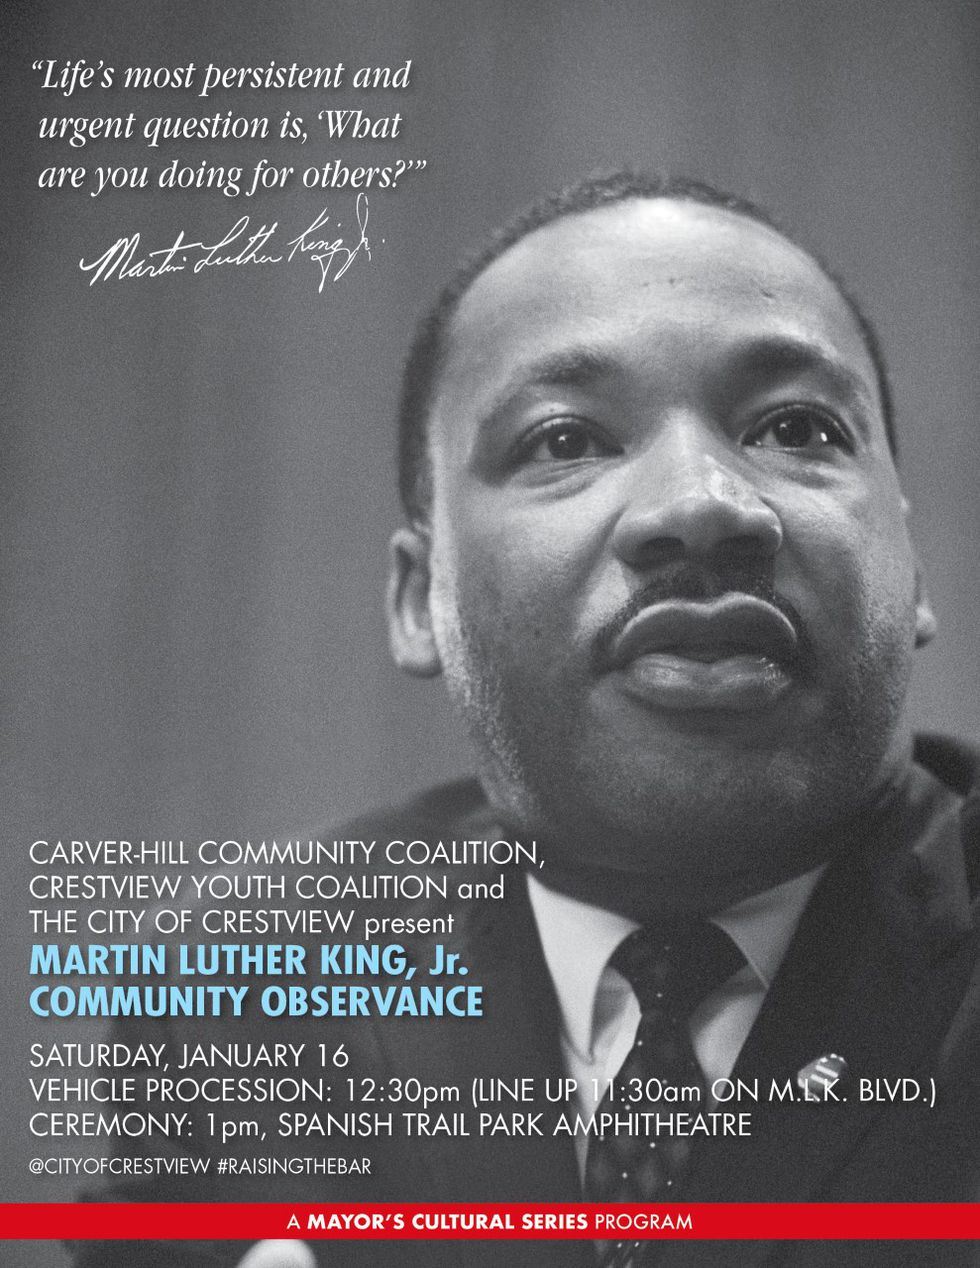 The city of Crestview will hold its MLK Commemoration events on Saturday, January 16.